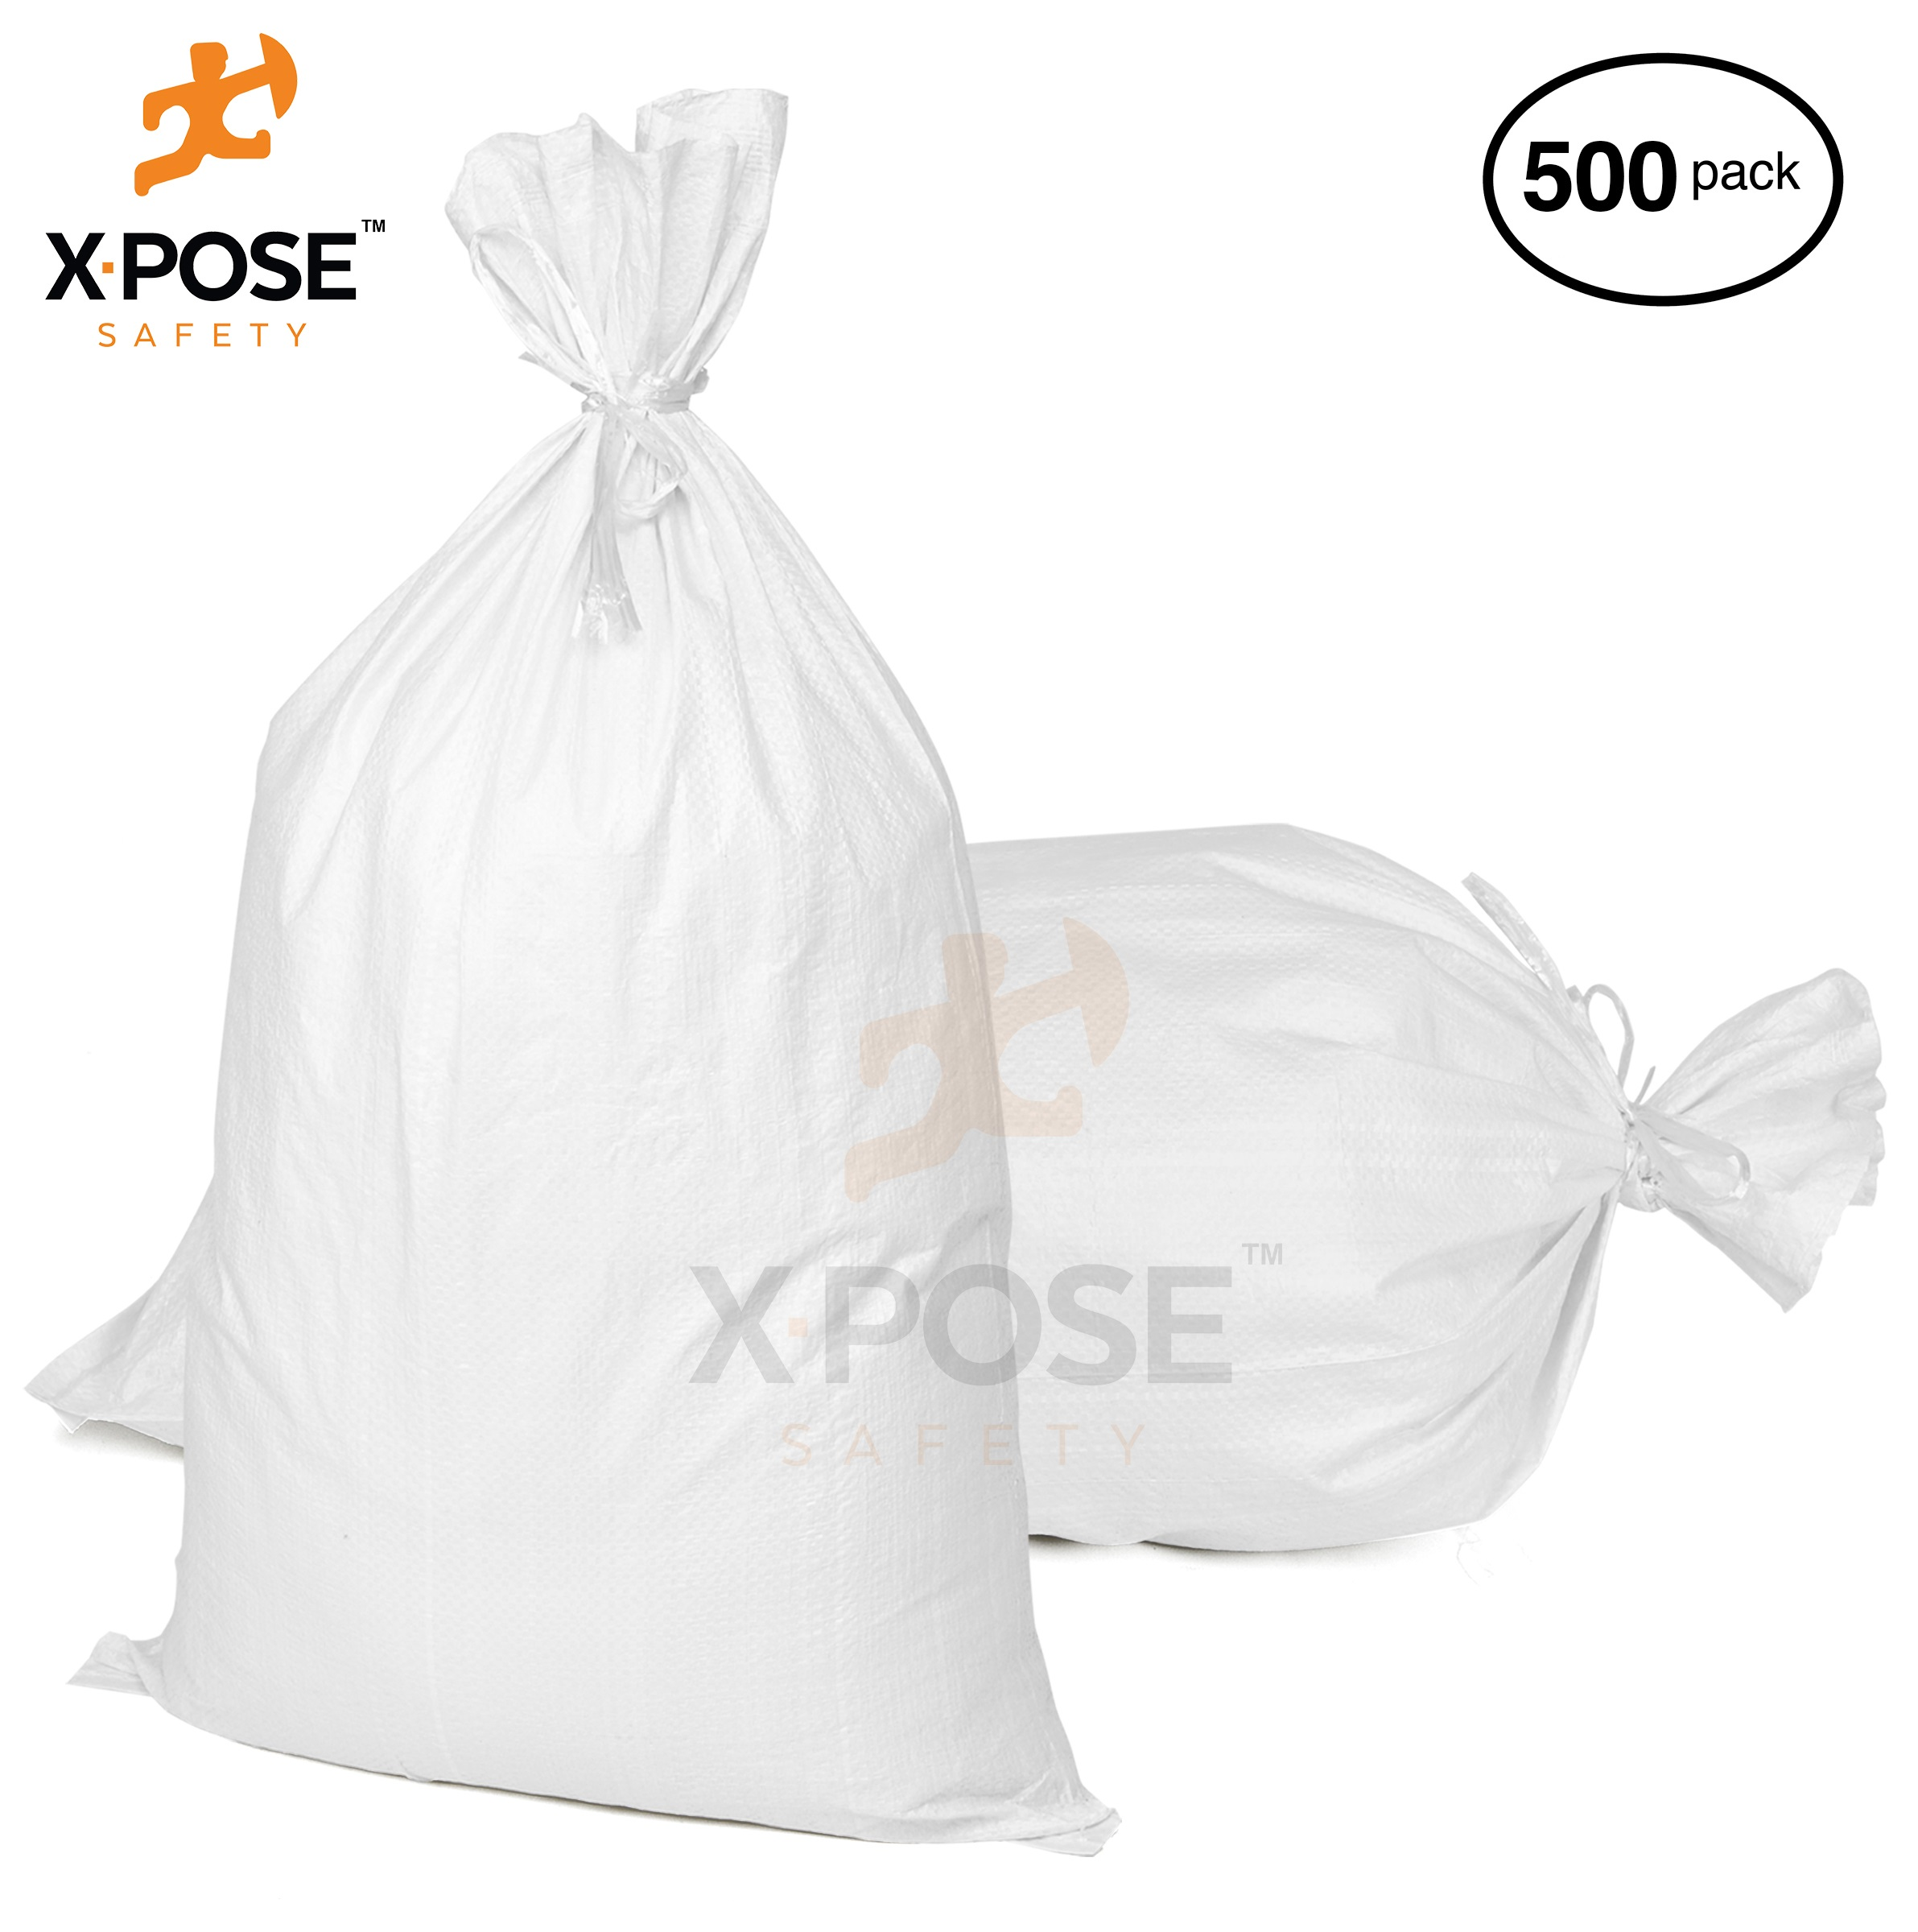 "18"" x 30"" Empty Sand Bags, 500 Pack with Ties  Heavy Duty Woven Polypropylene, UV Sun Protection, Dust, Water and Oil Resistant - Home and Industrial - Floods, Photography and More - by Xpose Safety WSB-1830-500"